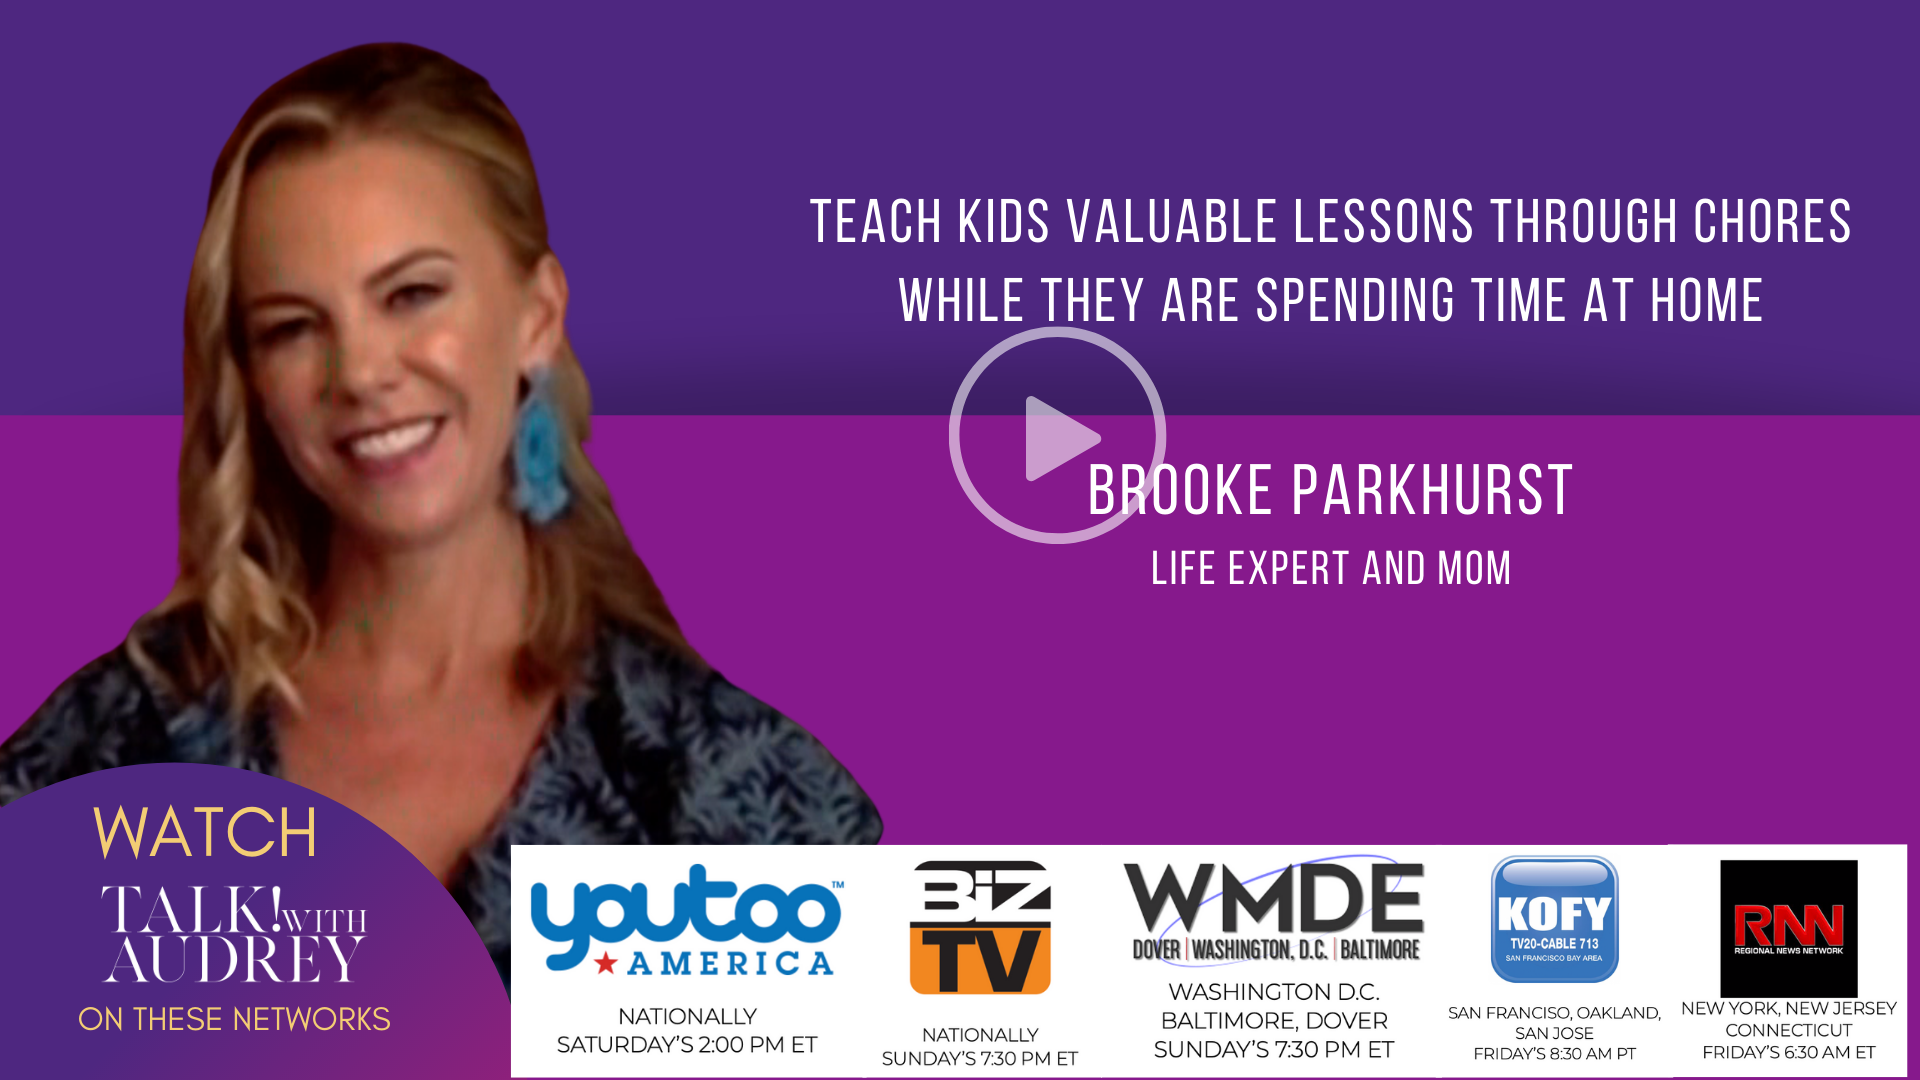 Teach Kids Valuable Lessons Through Chores While They are Spending Time at Home – TALK! with AUDREY